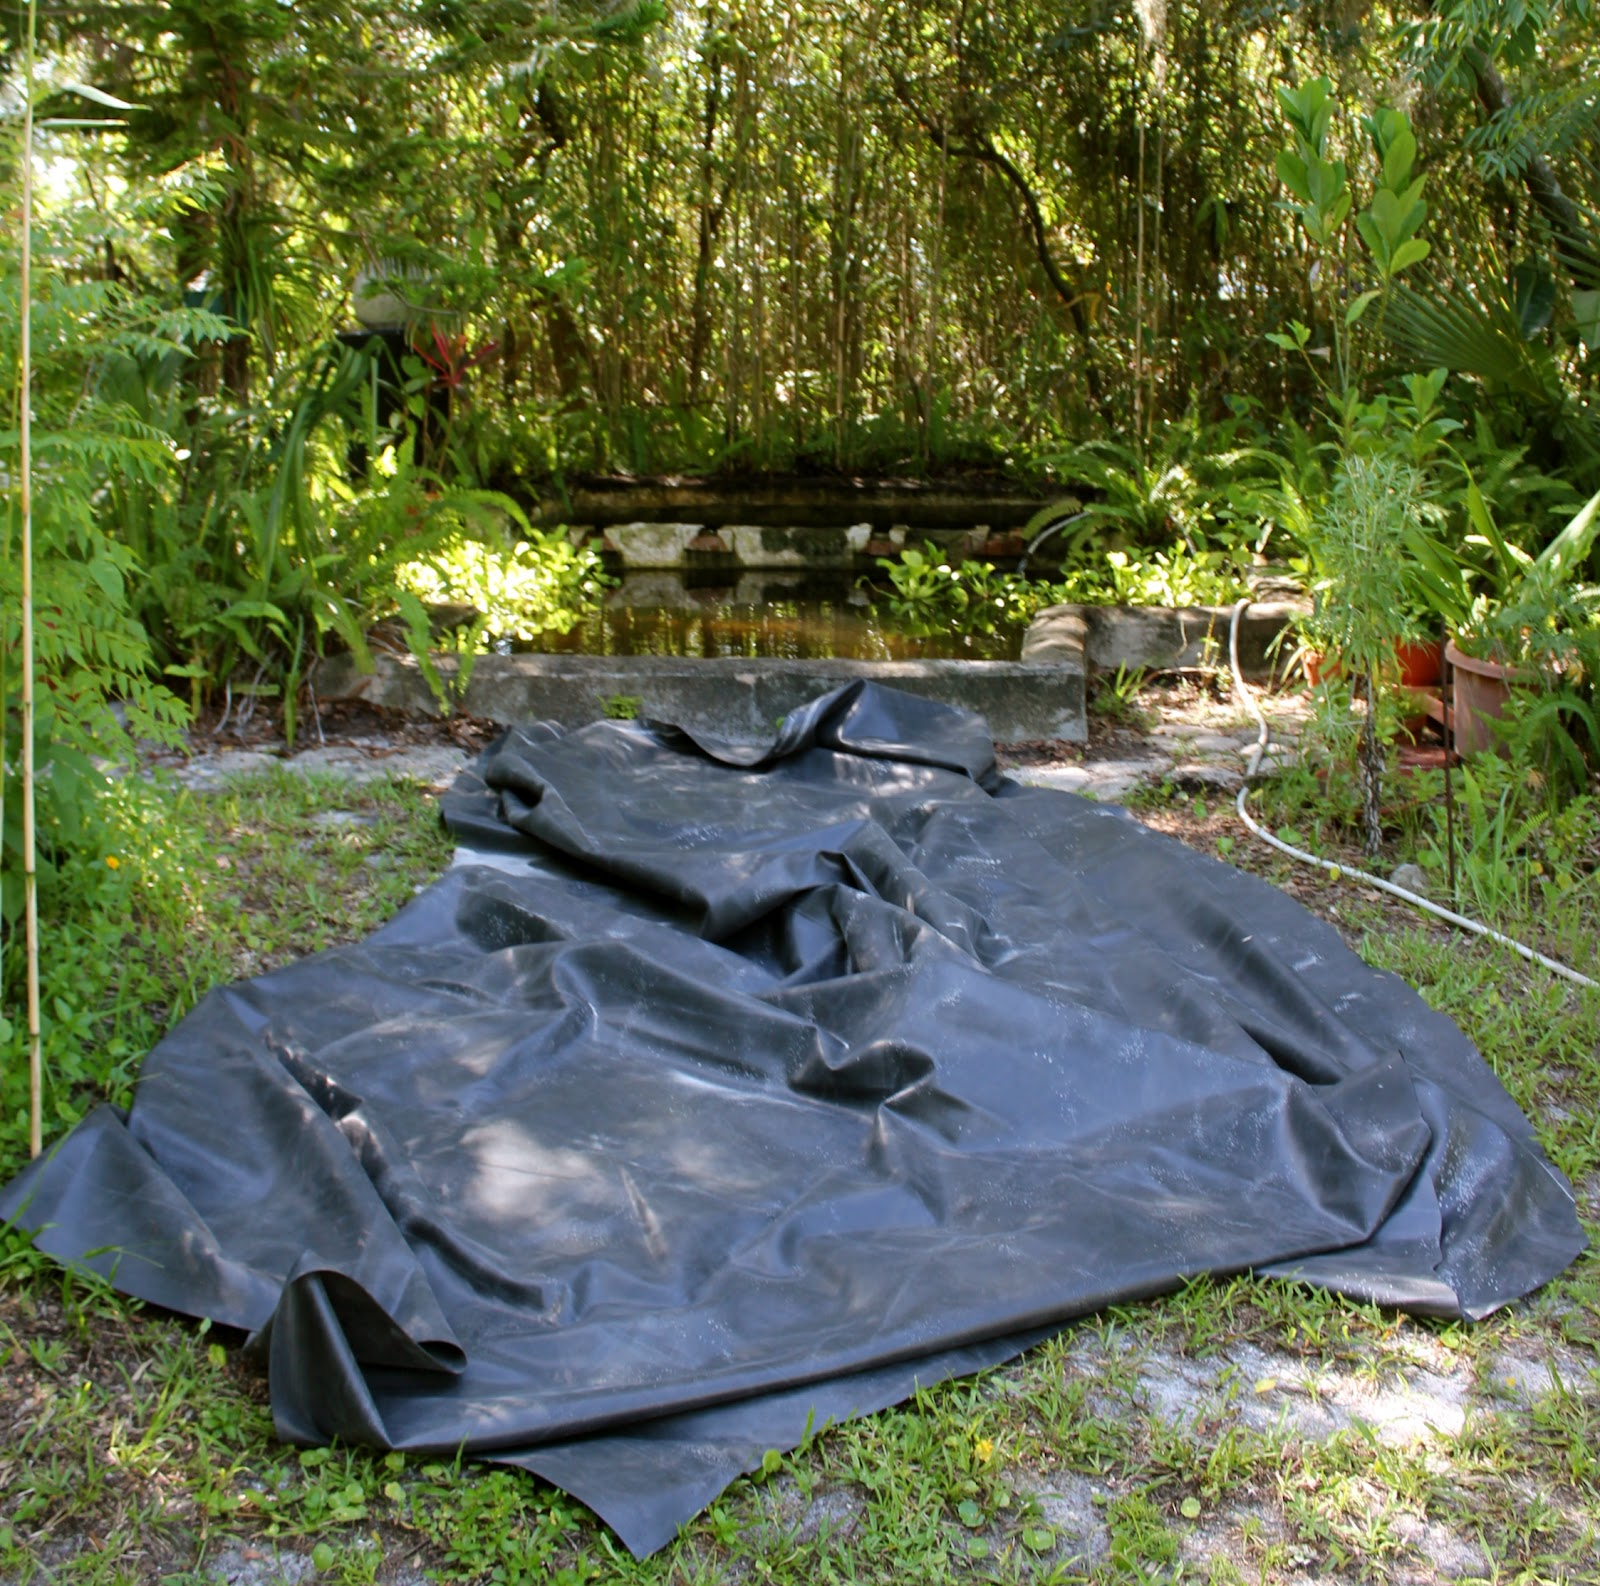 Turtle rescue phillip 39 s natural world 1 0 3 for Rubber pond liner